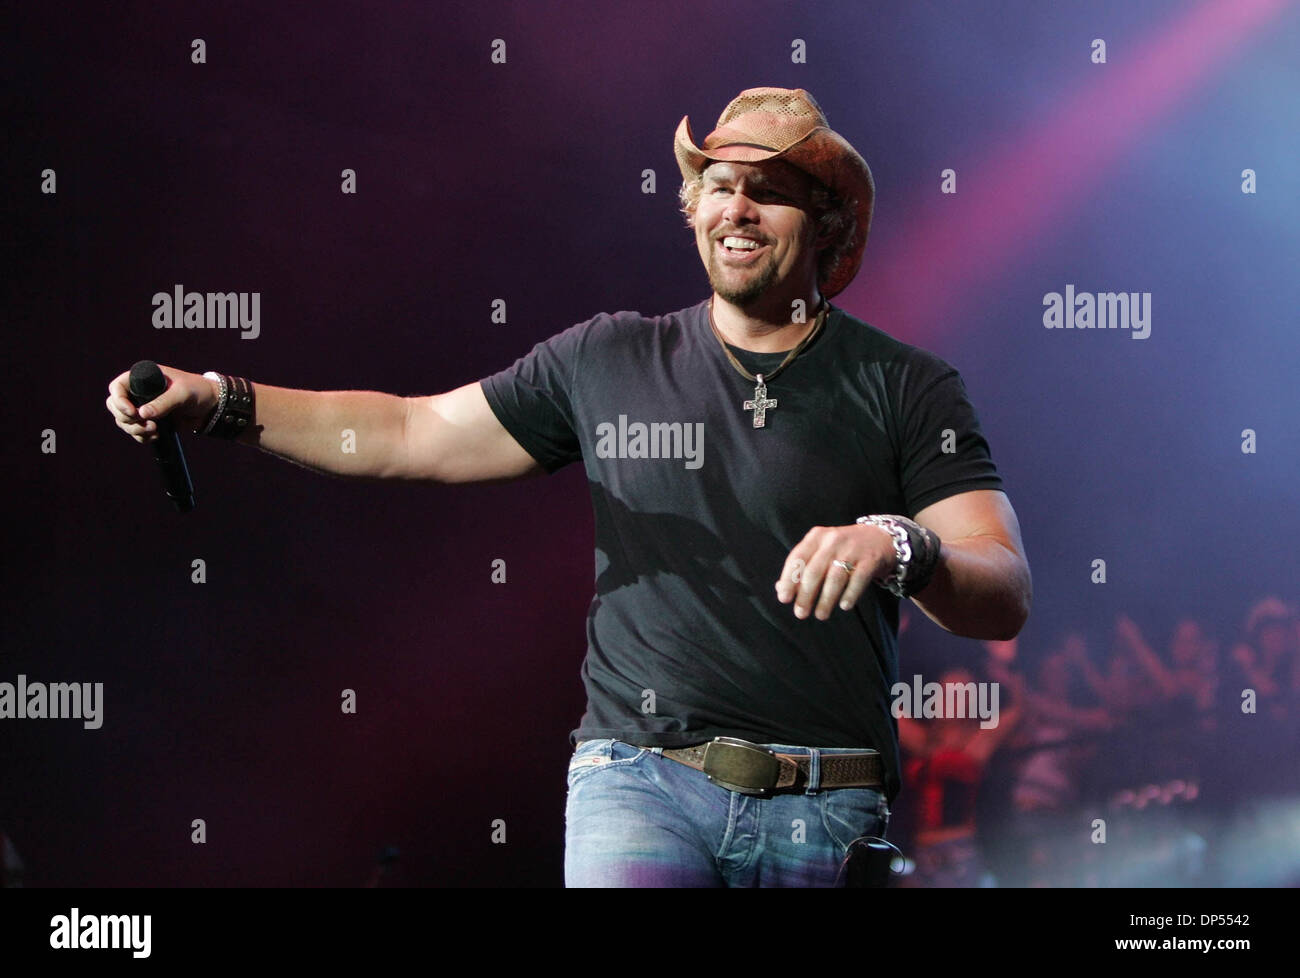 9d1ce1cfb3f79 Toby Keith Stock Photos   Toby Keith Stock Images - Alamy